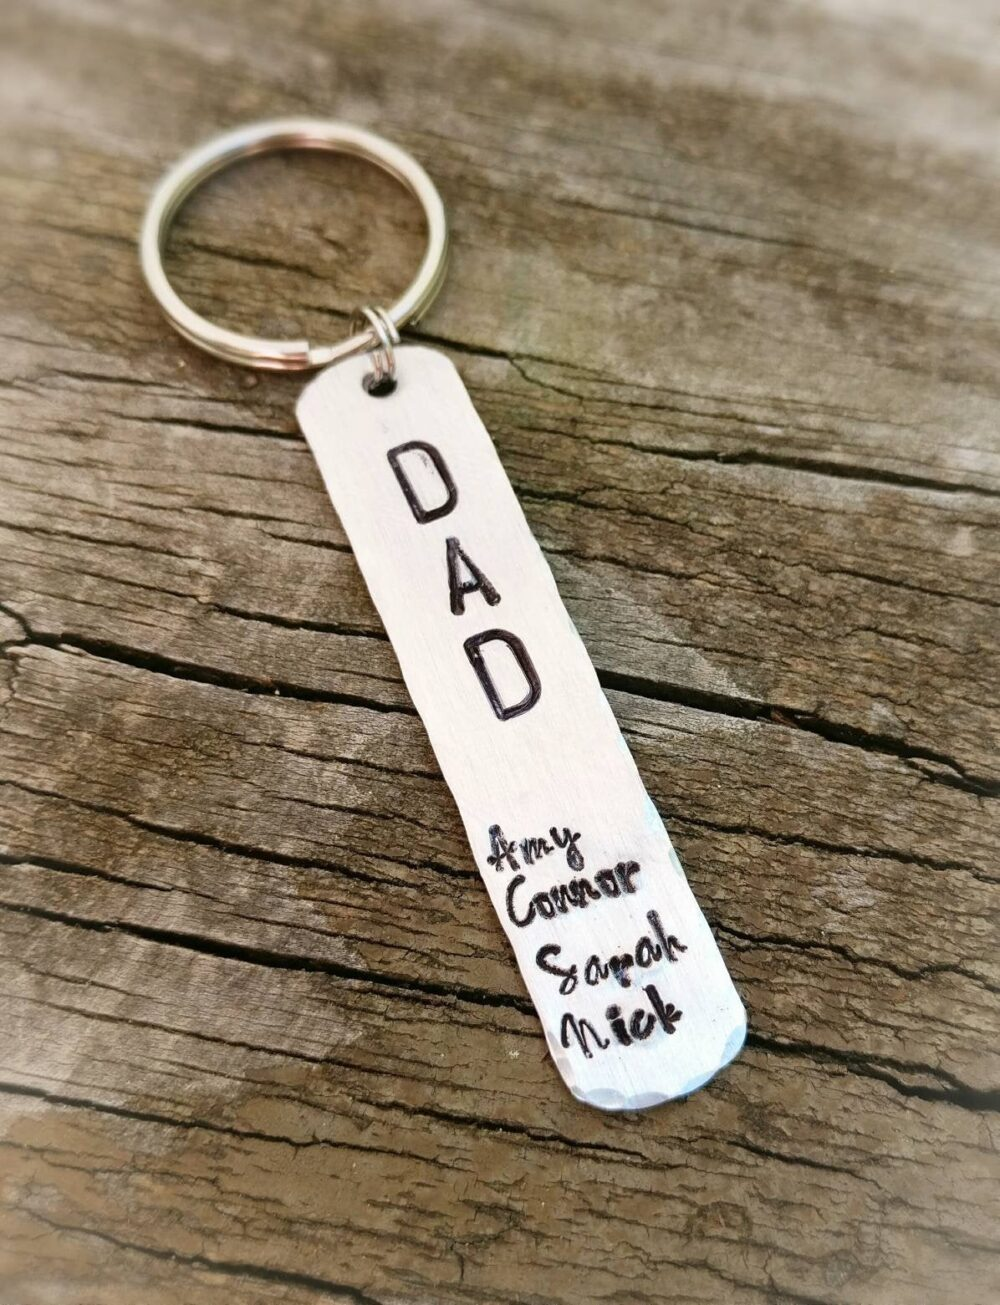 Gift For Dad - Dad Keychain, Family Dad Gift, Gift With Names, Keychain, Keychain For Dad, Father's Day